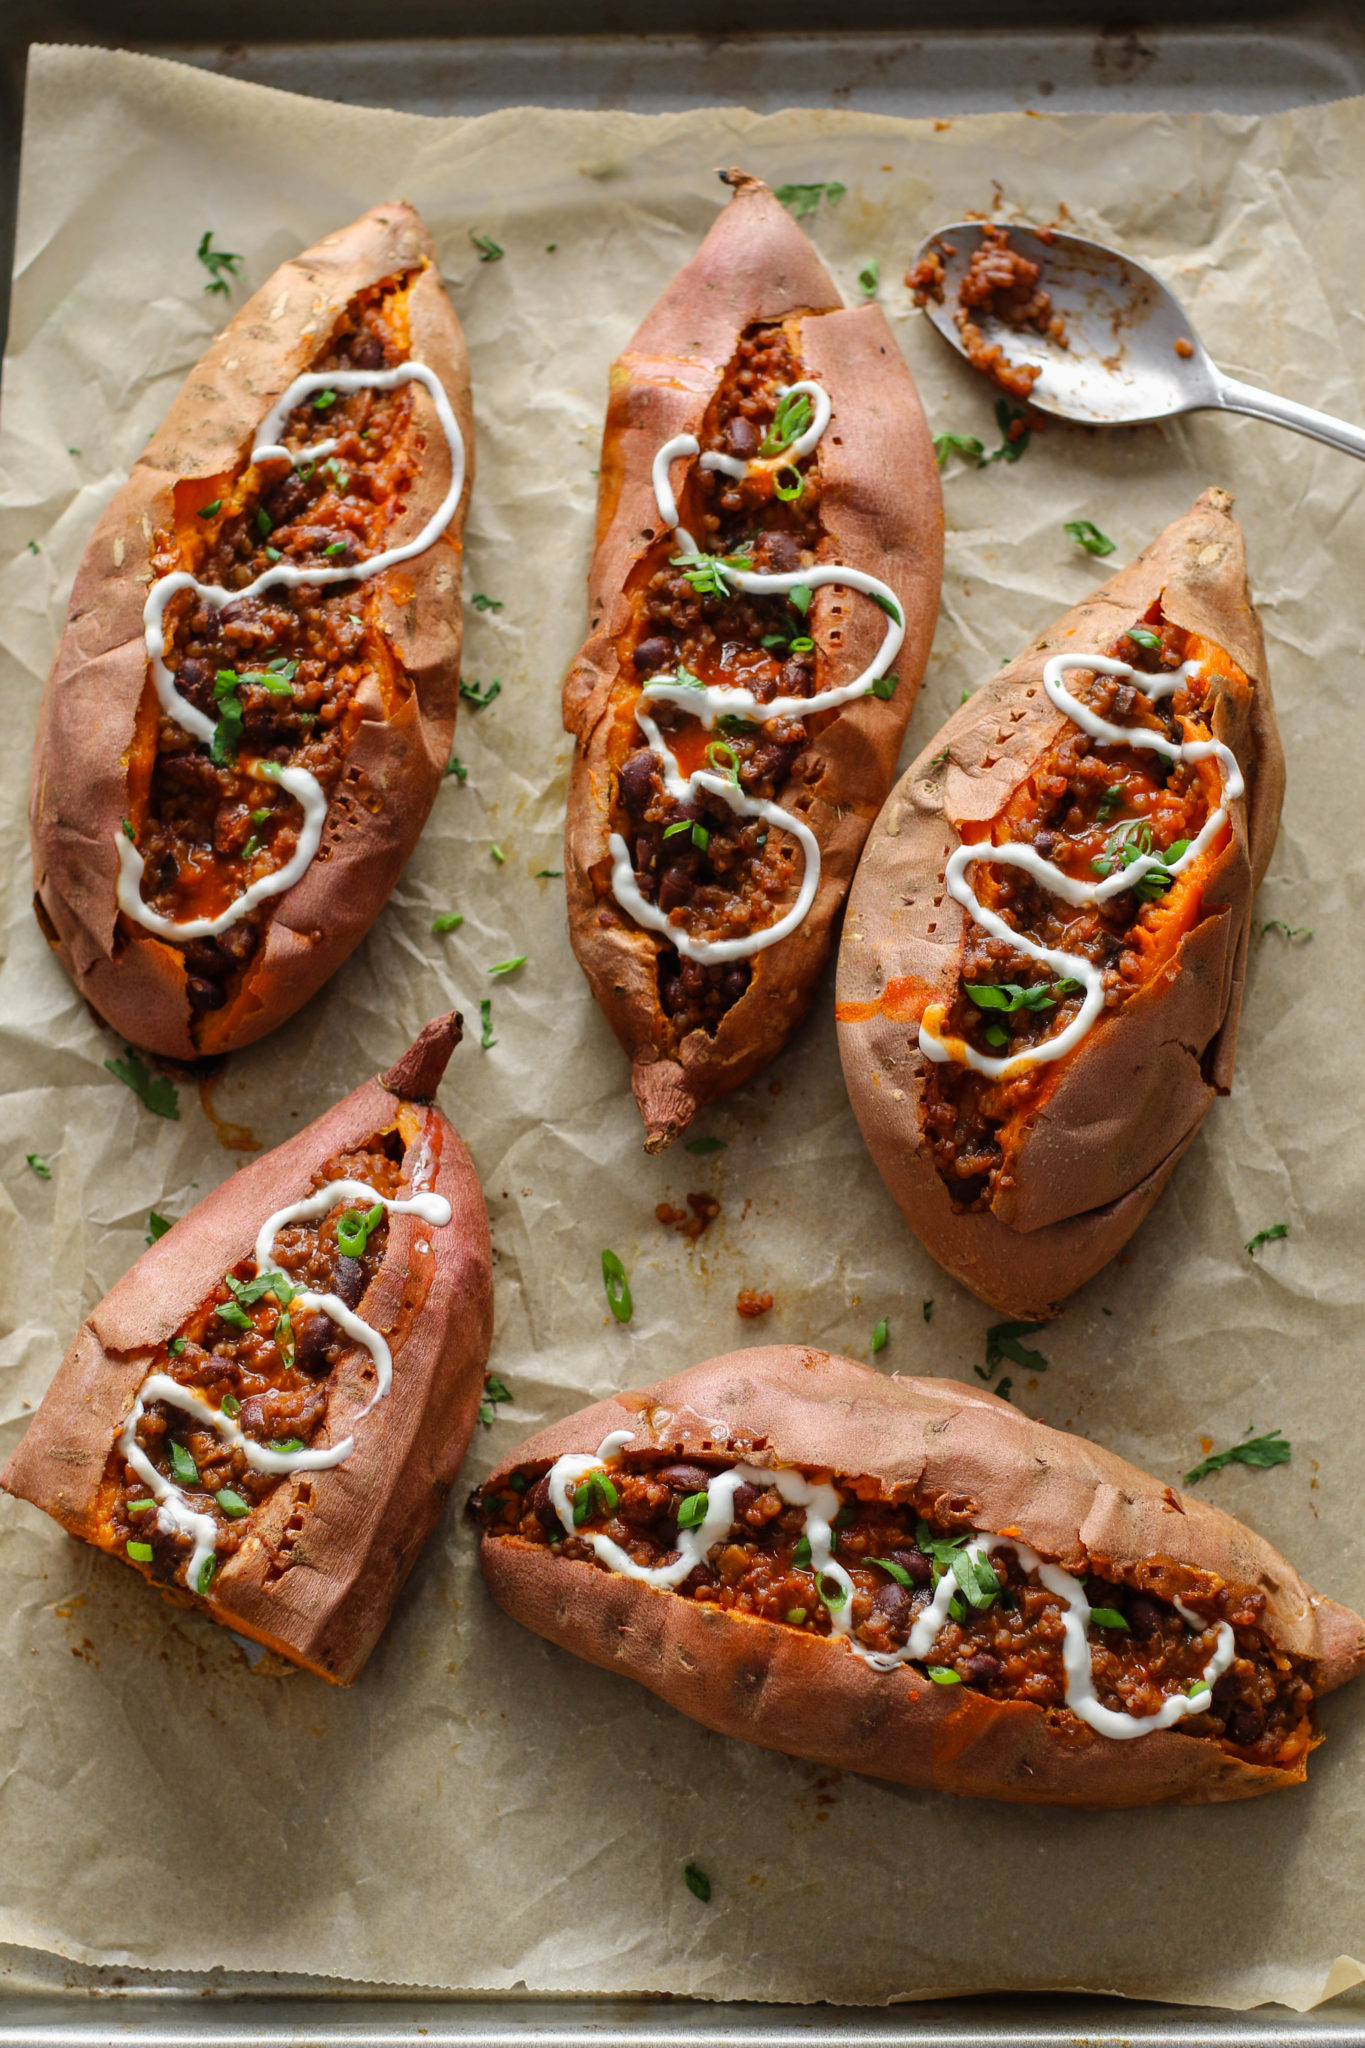 Chili Stuffed Sweet Potatoes by Flora & Vino